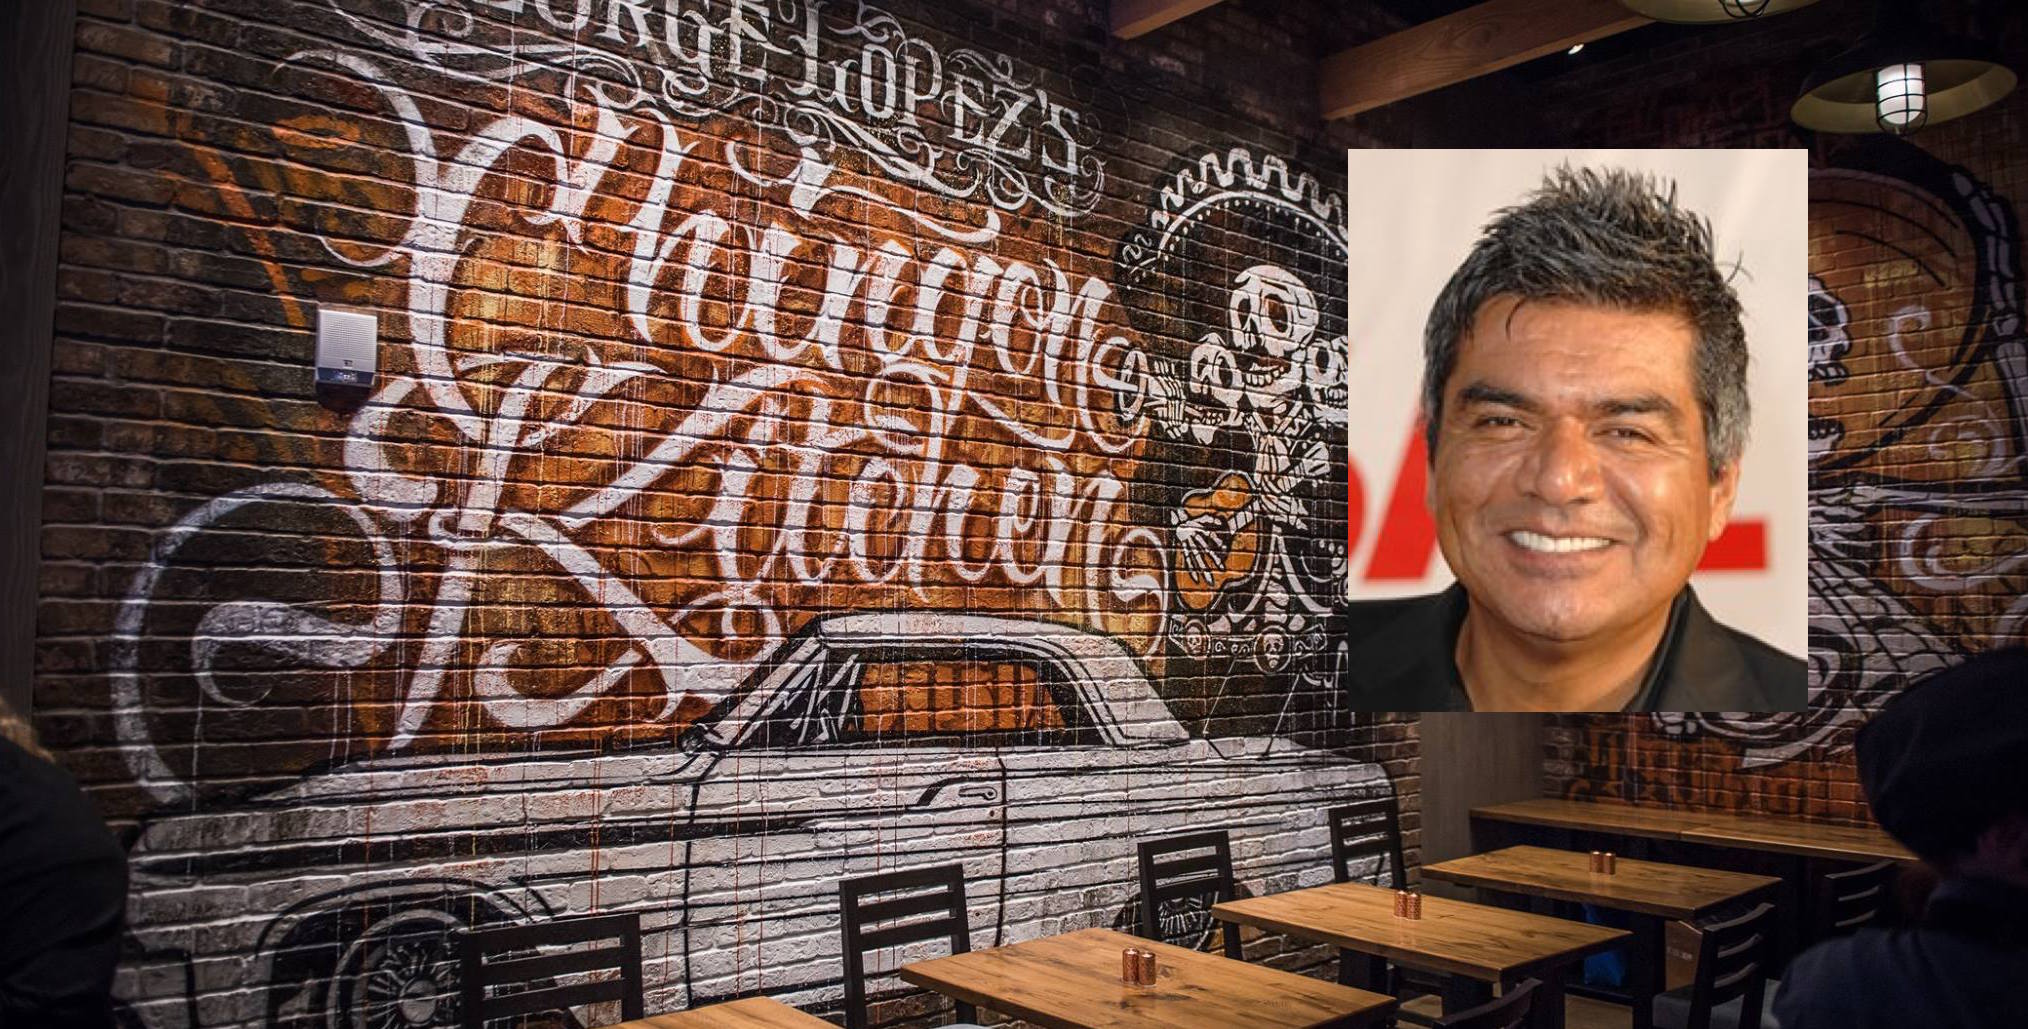 george lopez restaurant arizona